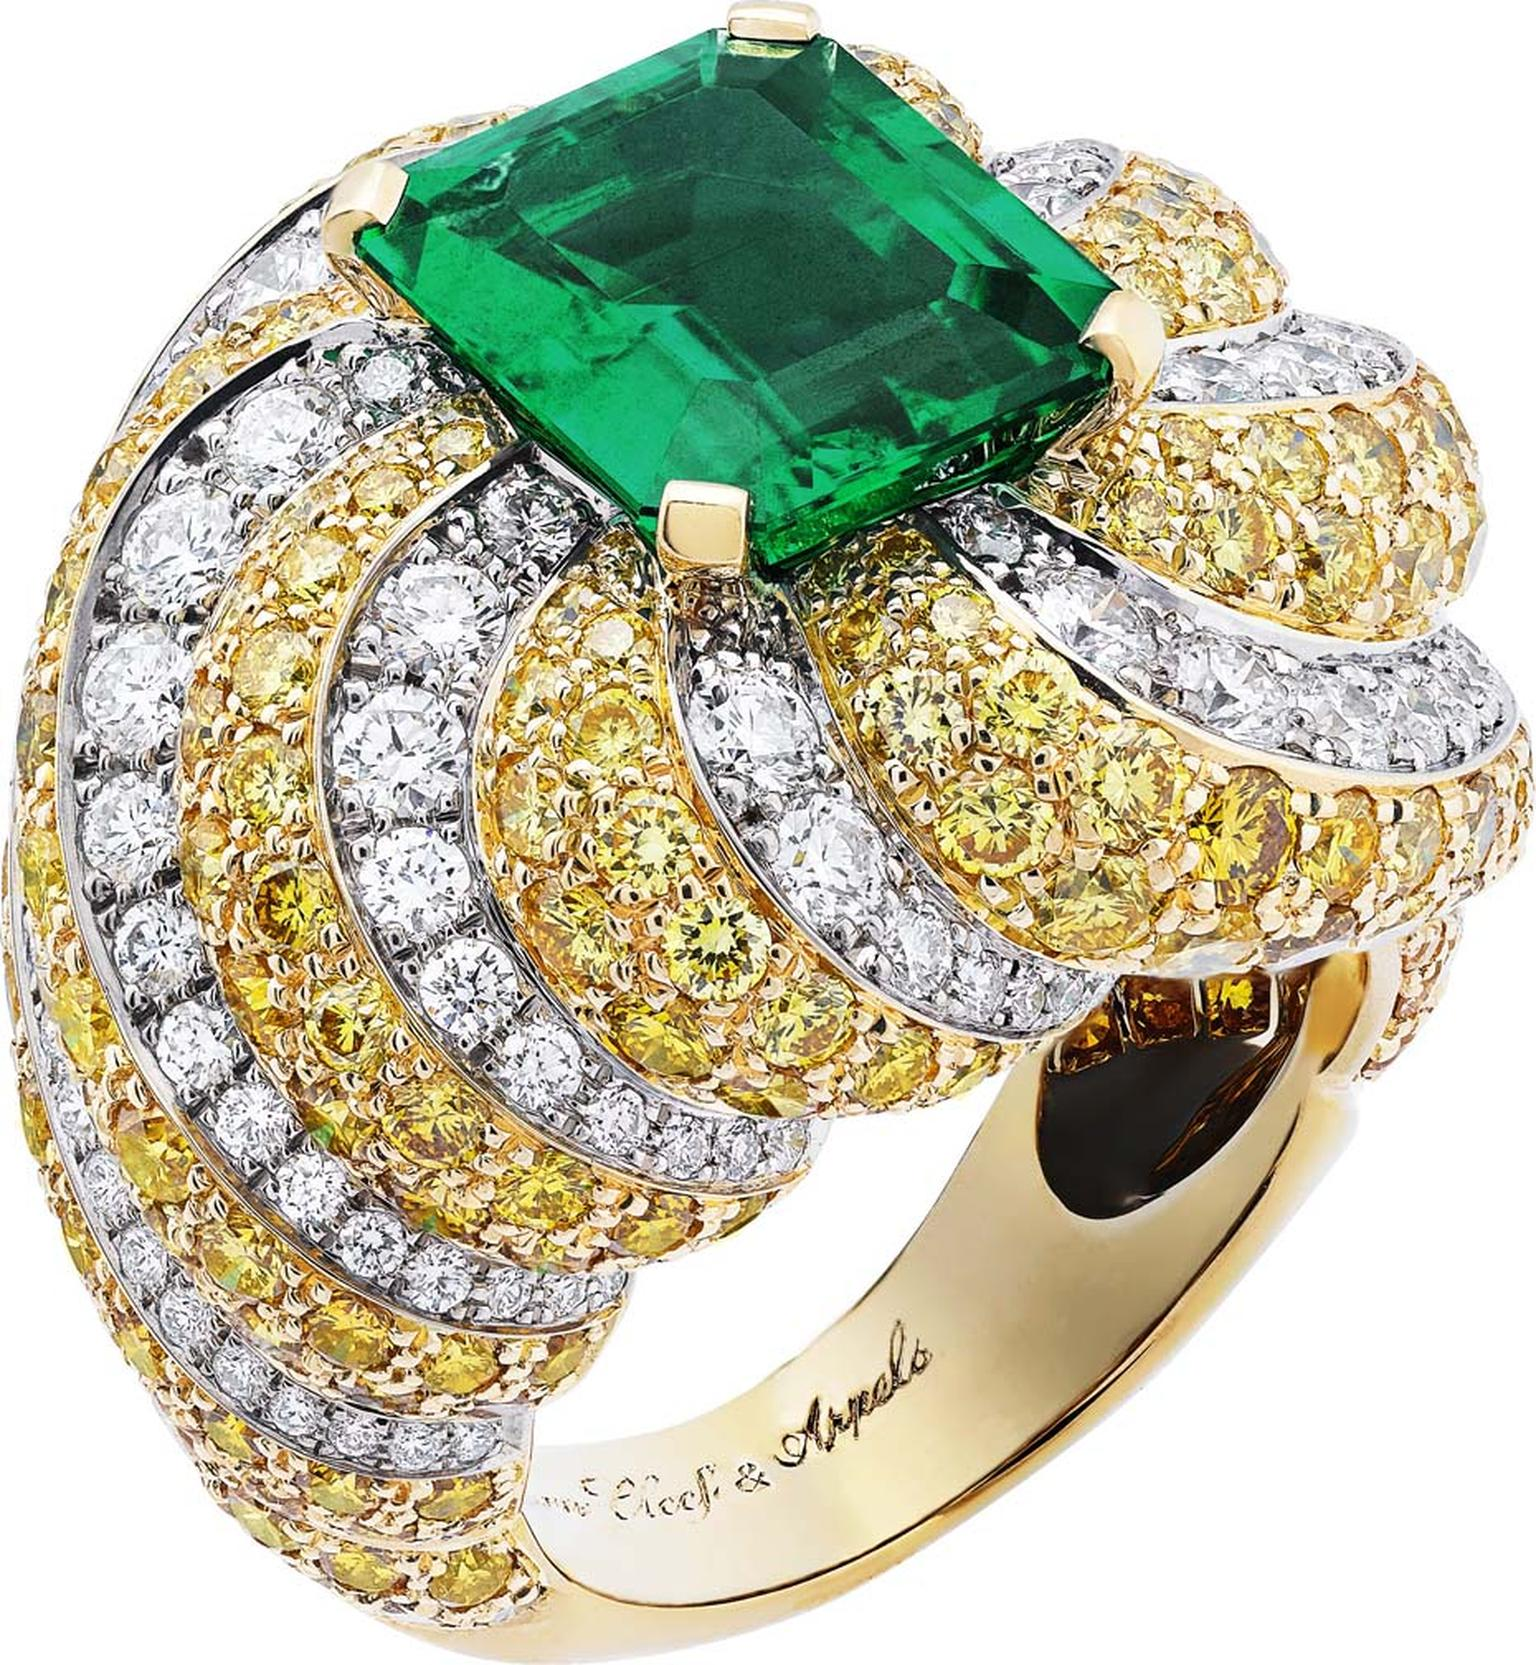 Van Cleef & Arpels Peau d'Âne collection white gold Cake Love ring with white diamonds, yellow diamonds and a central emerald cut 4.48ct Zambian emerald.